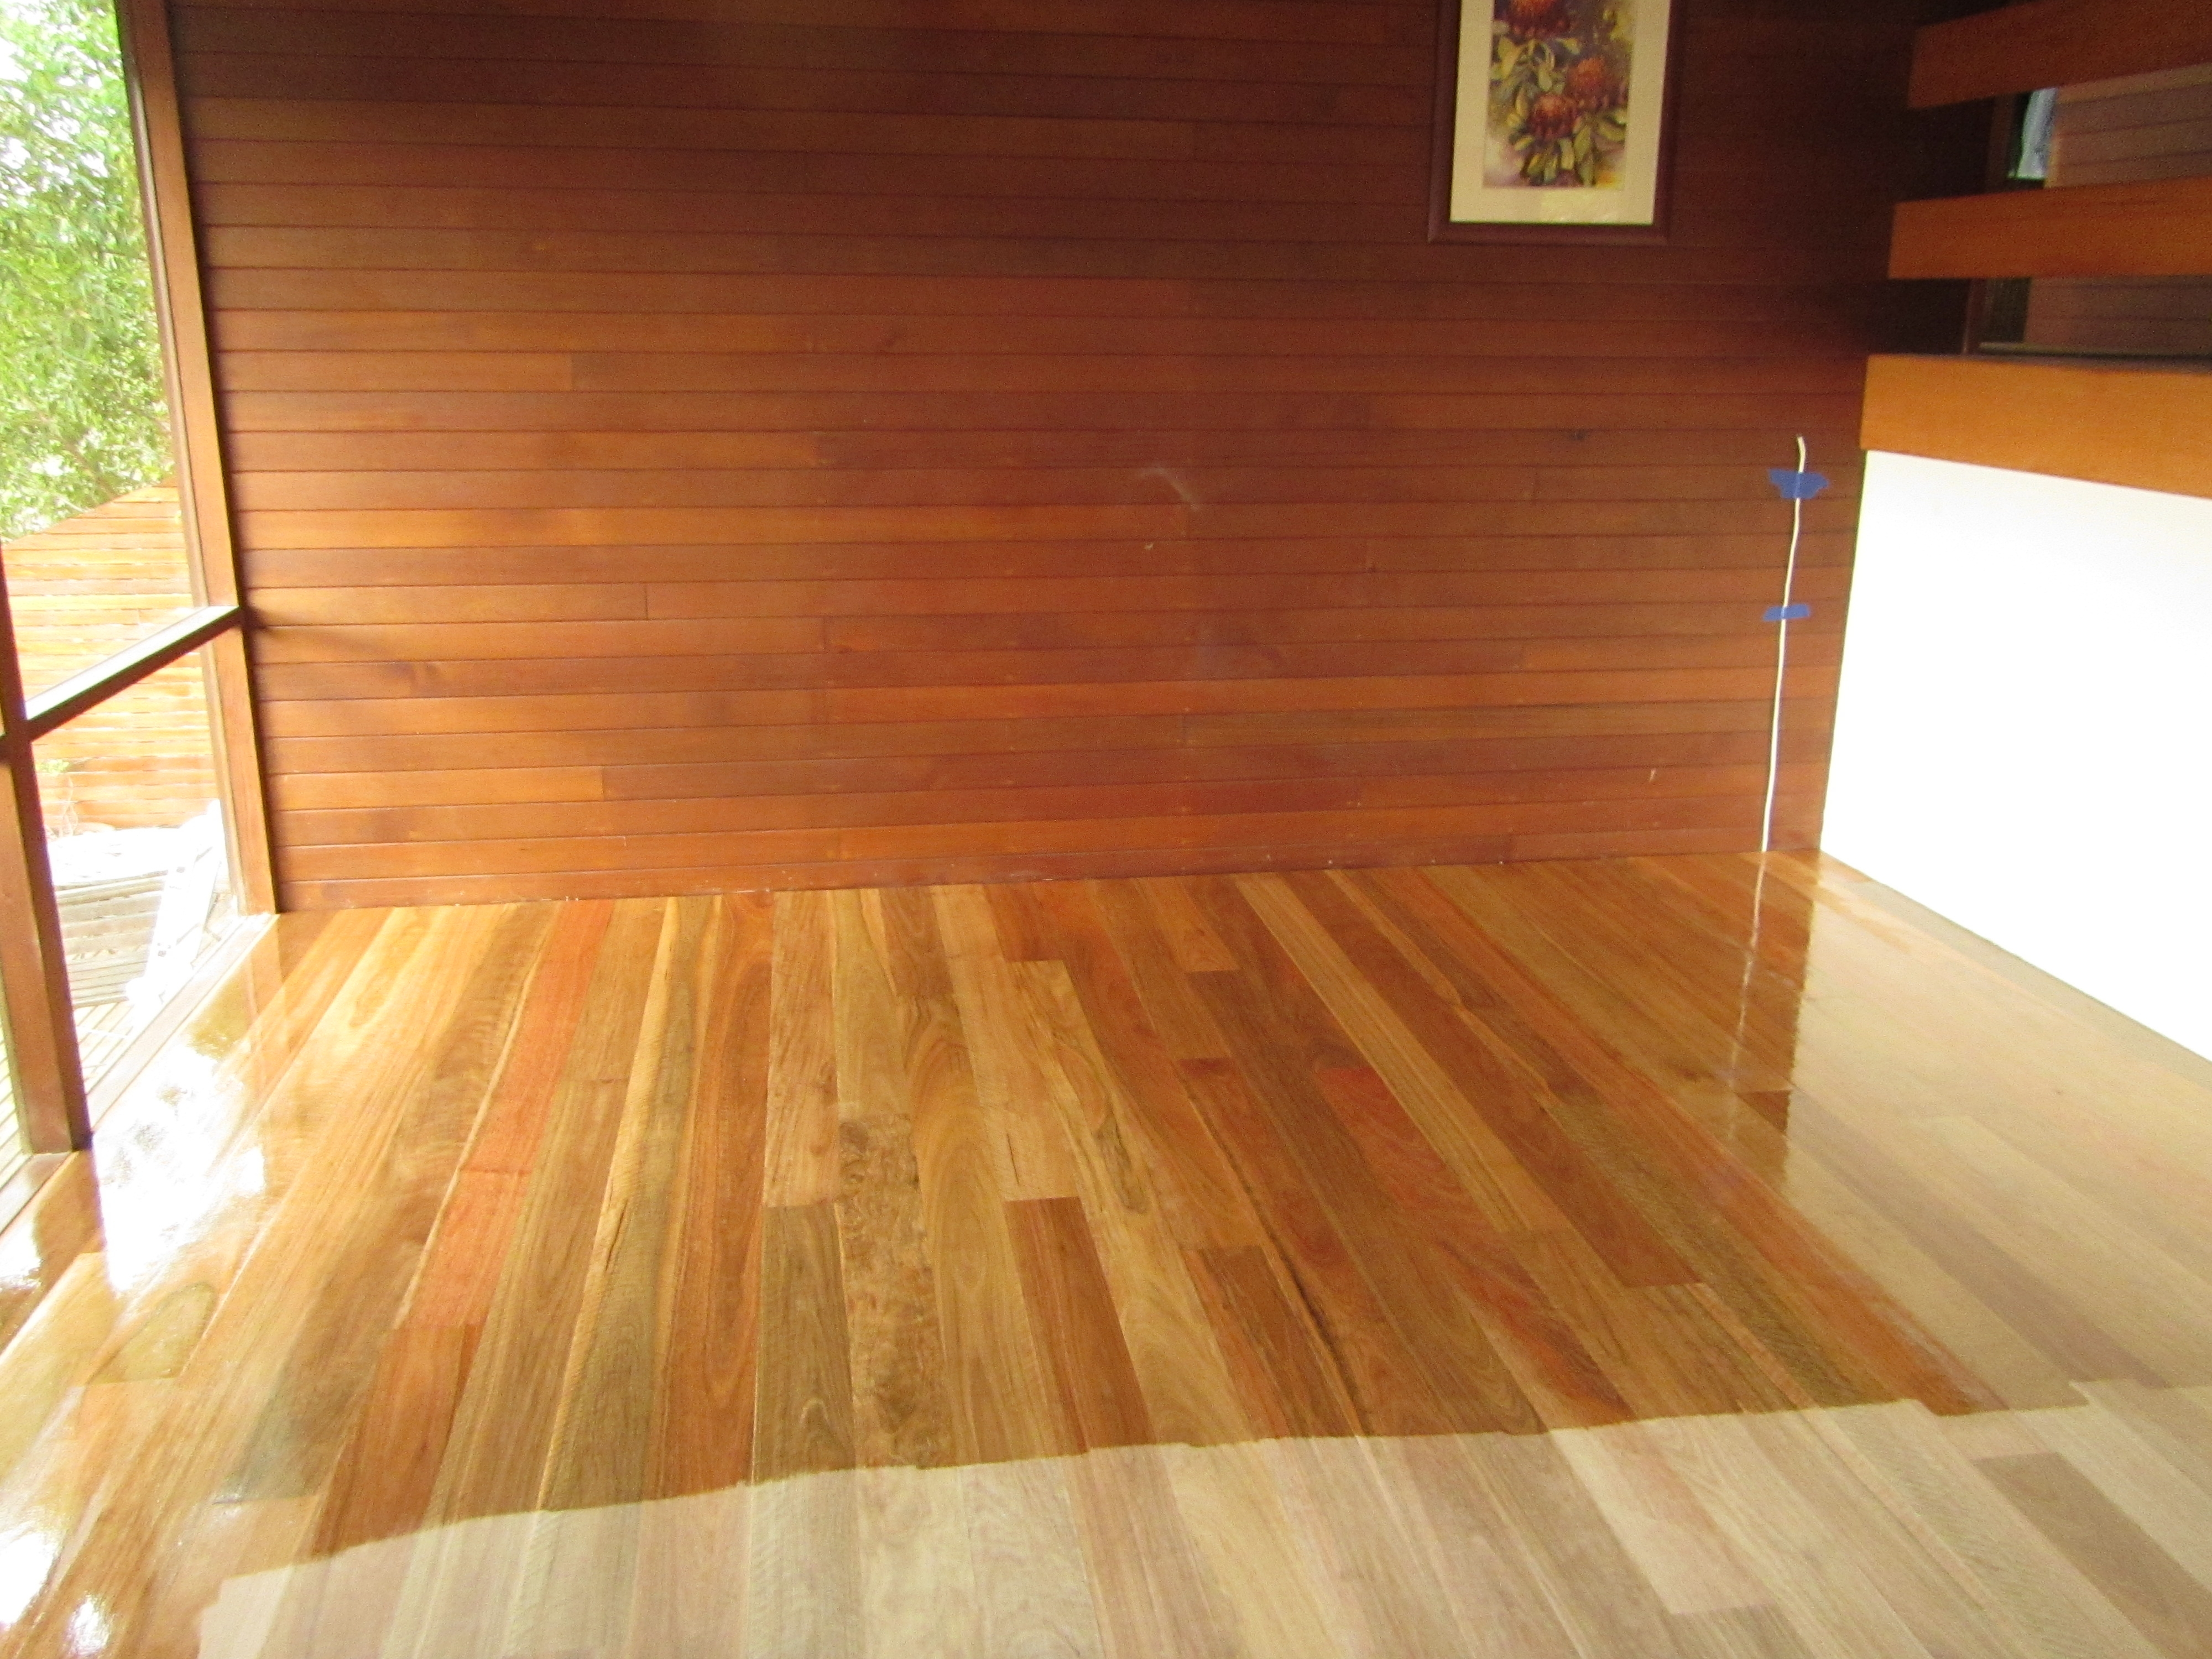 Tongue Oil For Wood Floors